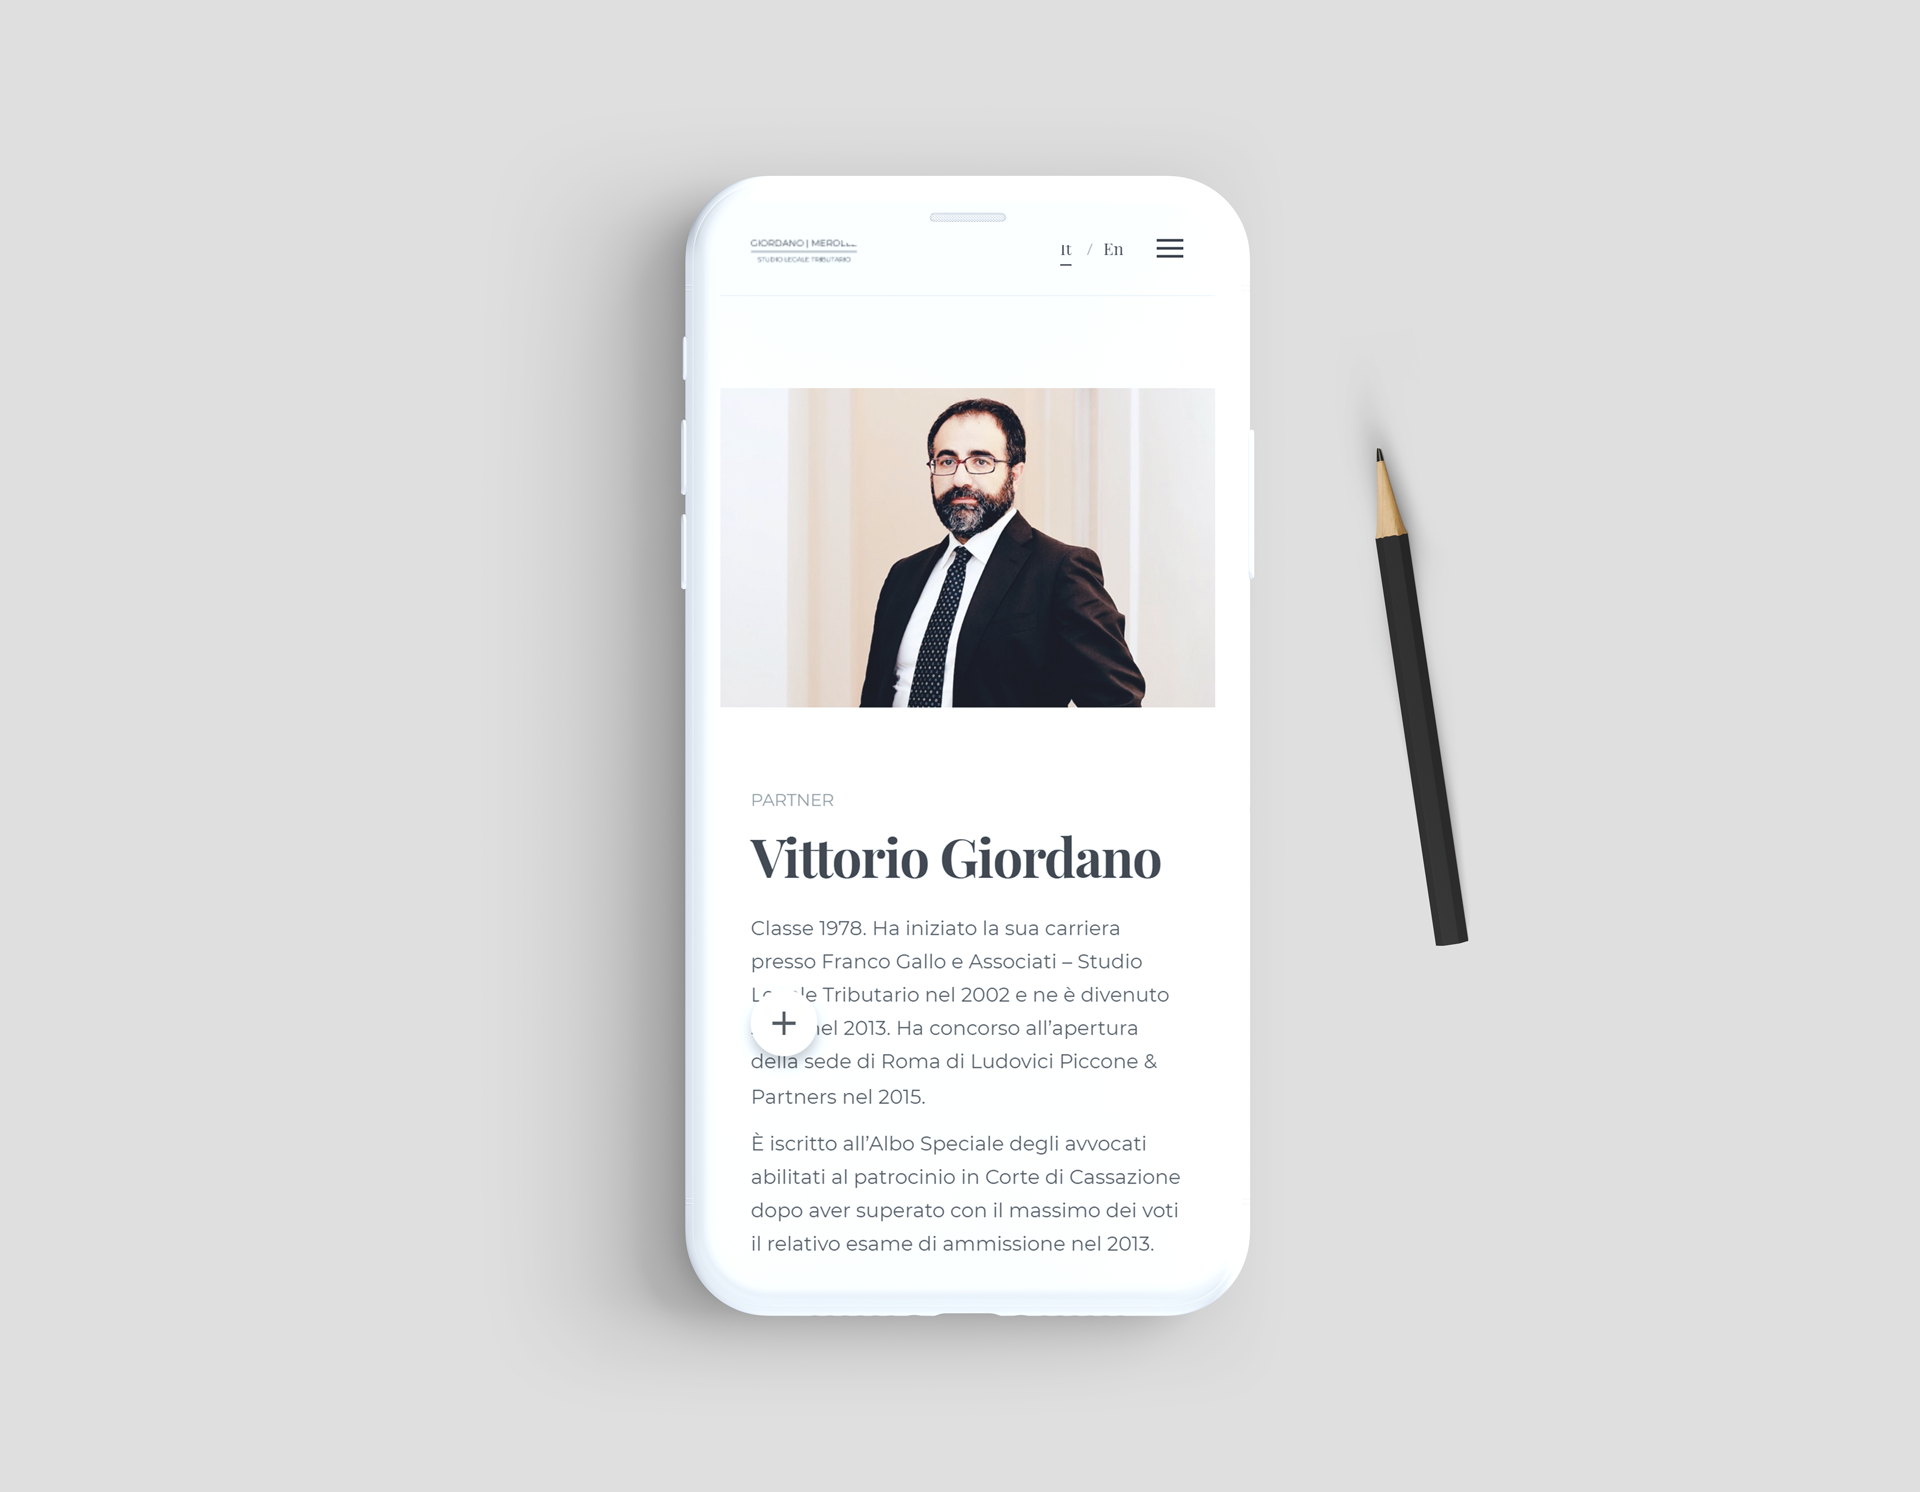 comunicazione visiva, web agency, comunicazione, computer grafica, visual design, wordpress gdpr, wordpress template, template, quanto costa un sito web